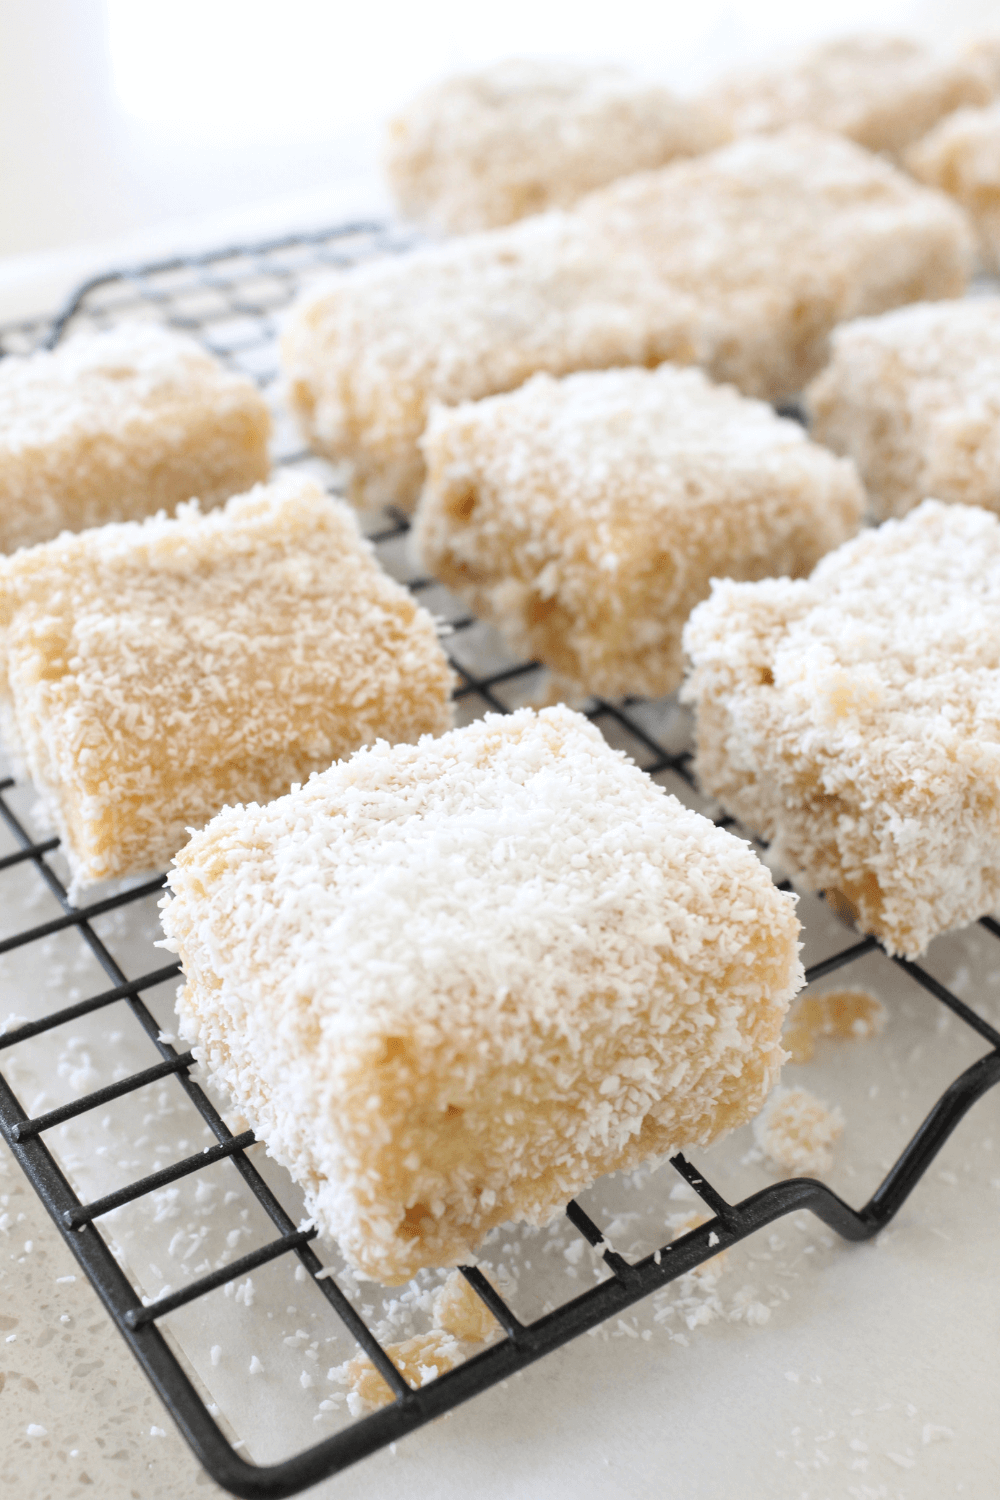 These Caramilk lamingtons are a twist on the favourite Australian dessert. For those not familiar with lamingtons, they are basically a sponge cake cut into pieces, dipped in chocolate icing and coated in desiccated coconut.